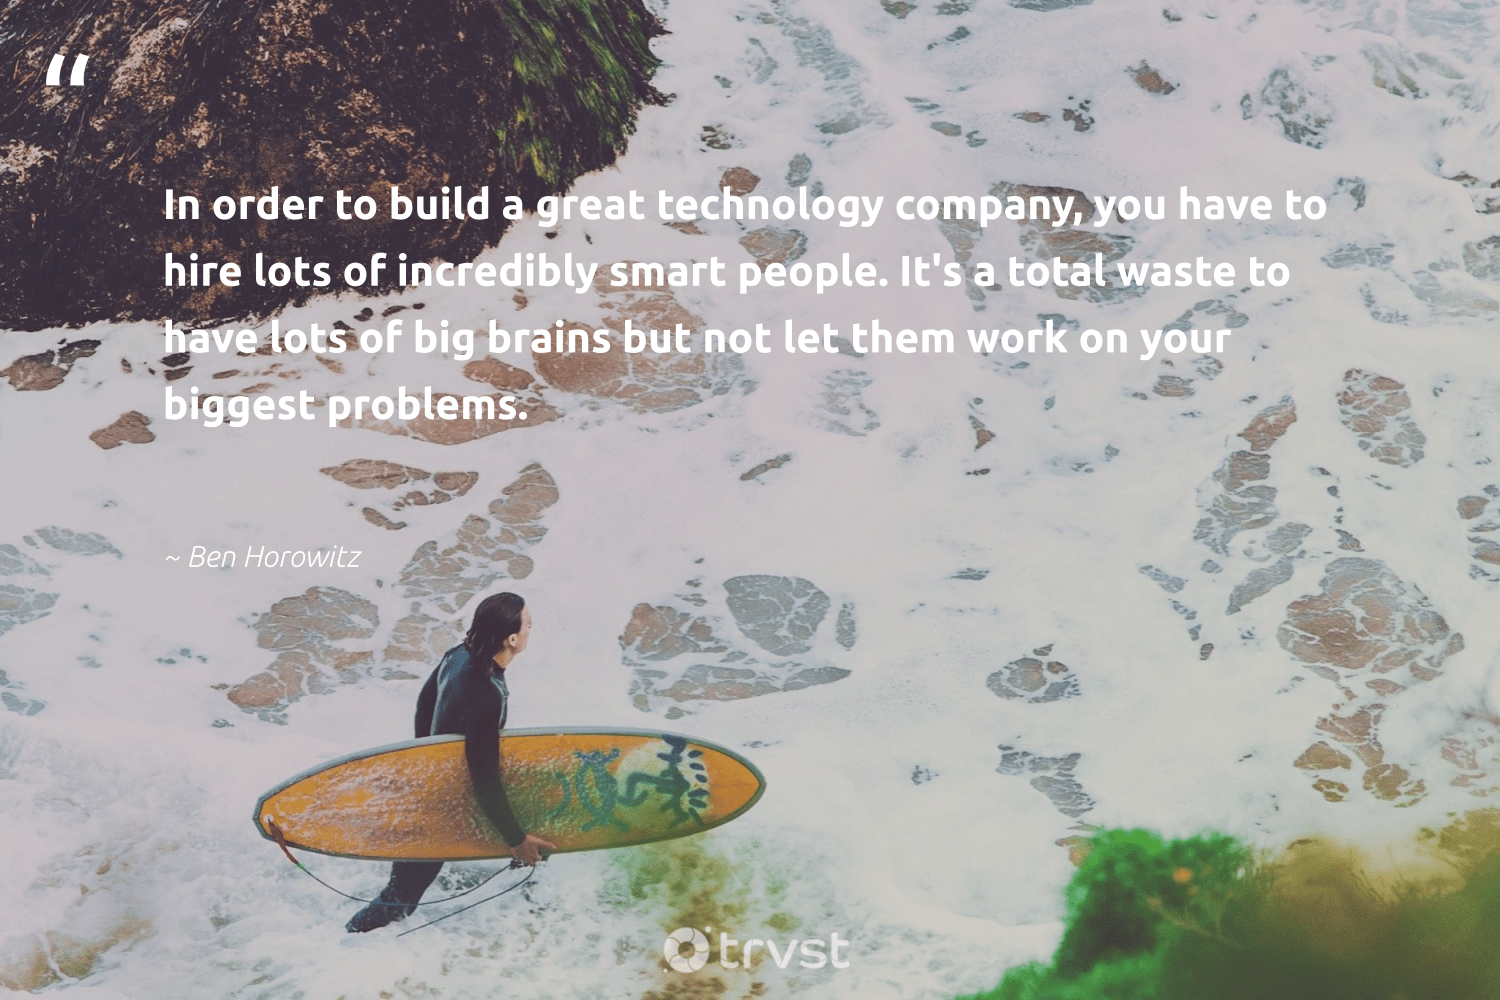 """In order to build a great technology company, you have to hire lots of incredibly smart people. It's a total waste to have lots of big brains but not let them work on your biggest problems.""  - Ben Horowitz #trvst #quotes #waste #makeadifference #takeaction #socialchange #dogood #giveback #impact #ethicalbusiness #beinspired #betterplanet"